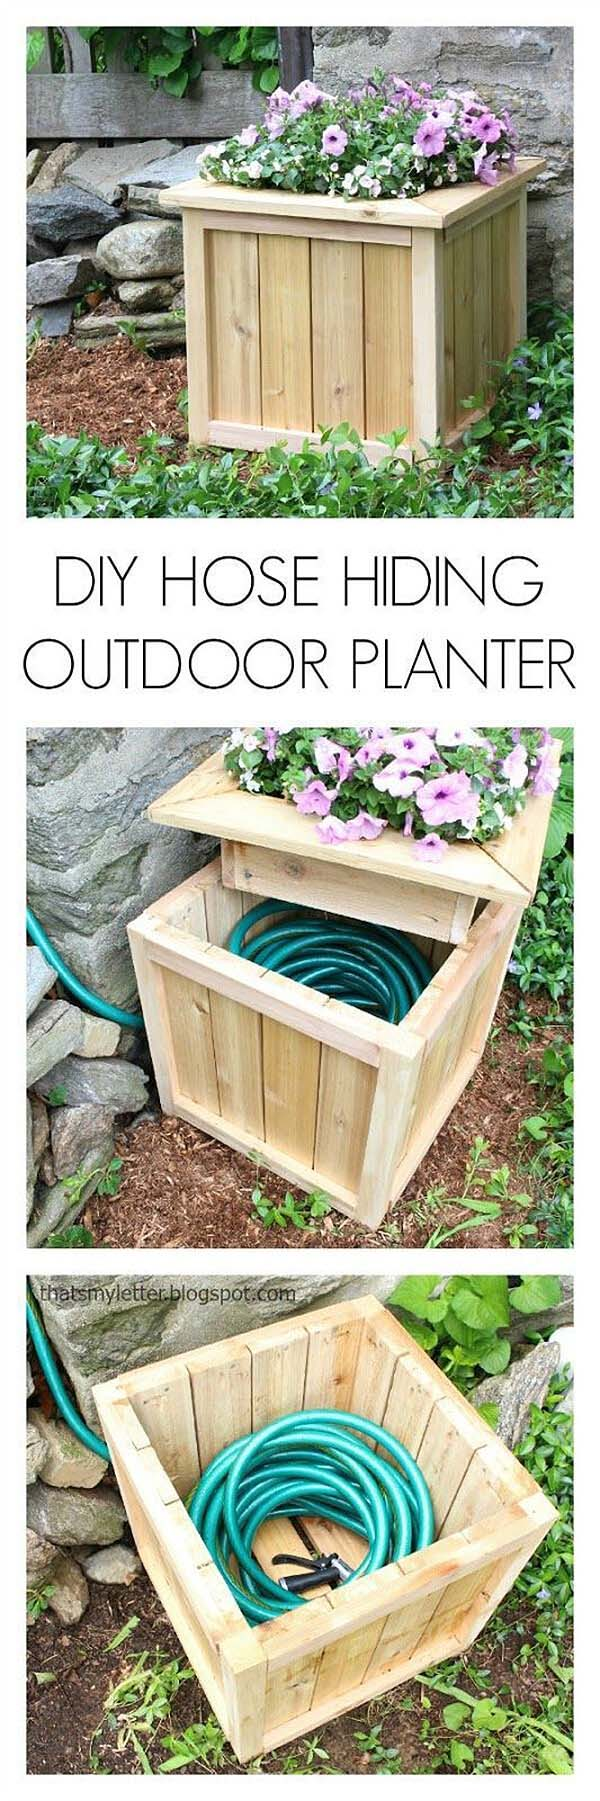 DIY Hose Hiding Planter #outdoor #hiding #ideas #decorhomeideas